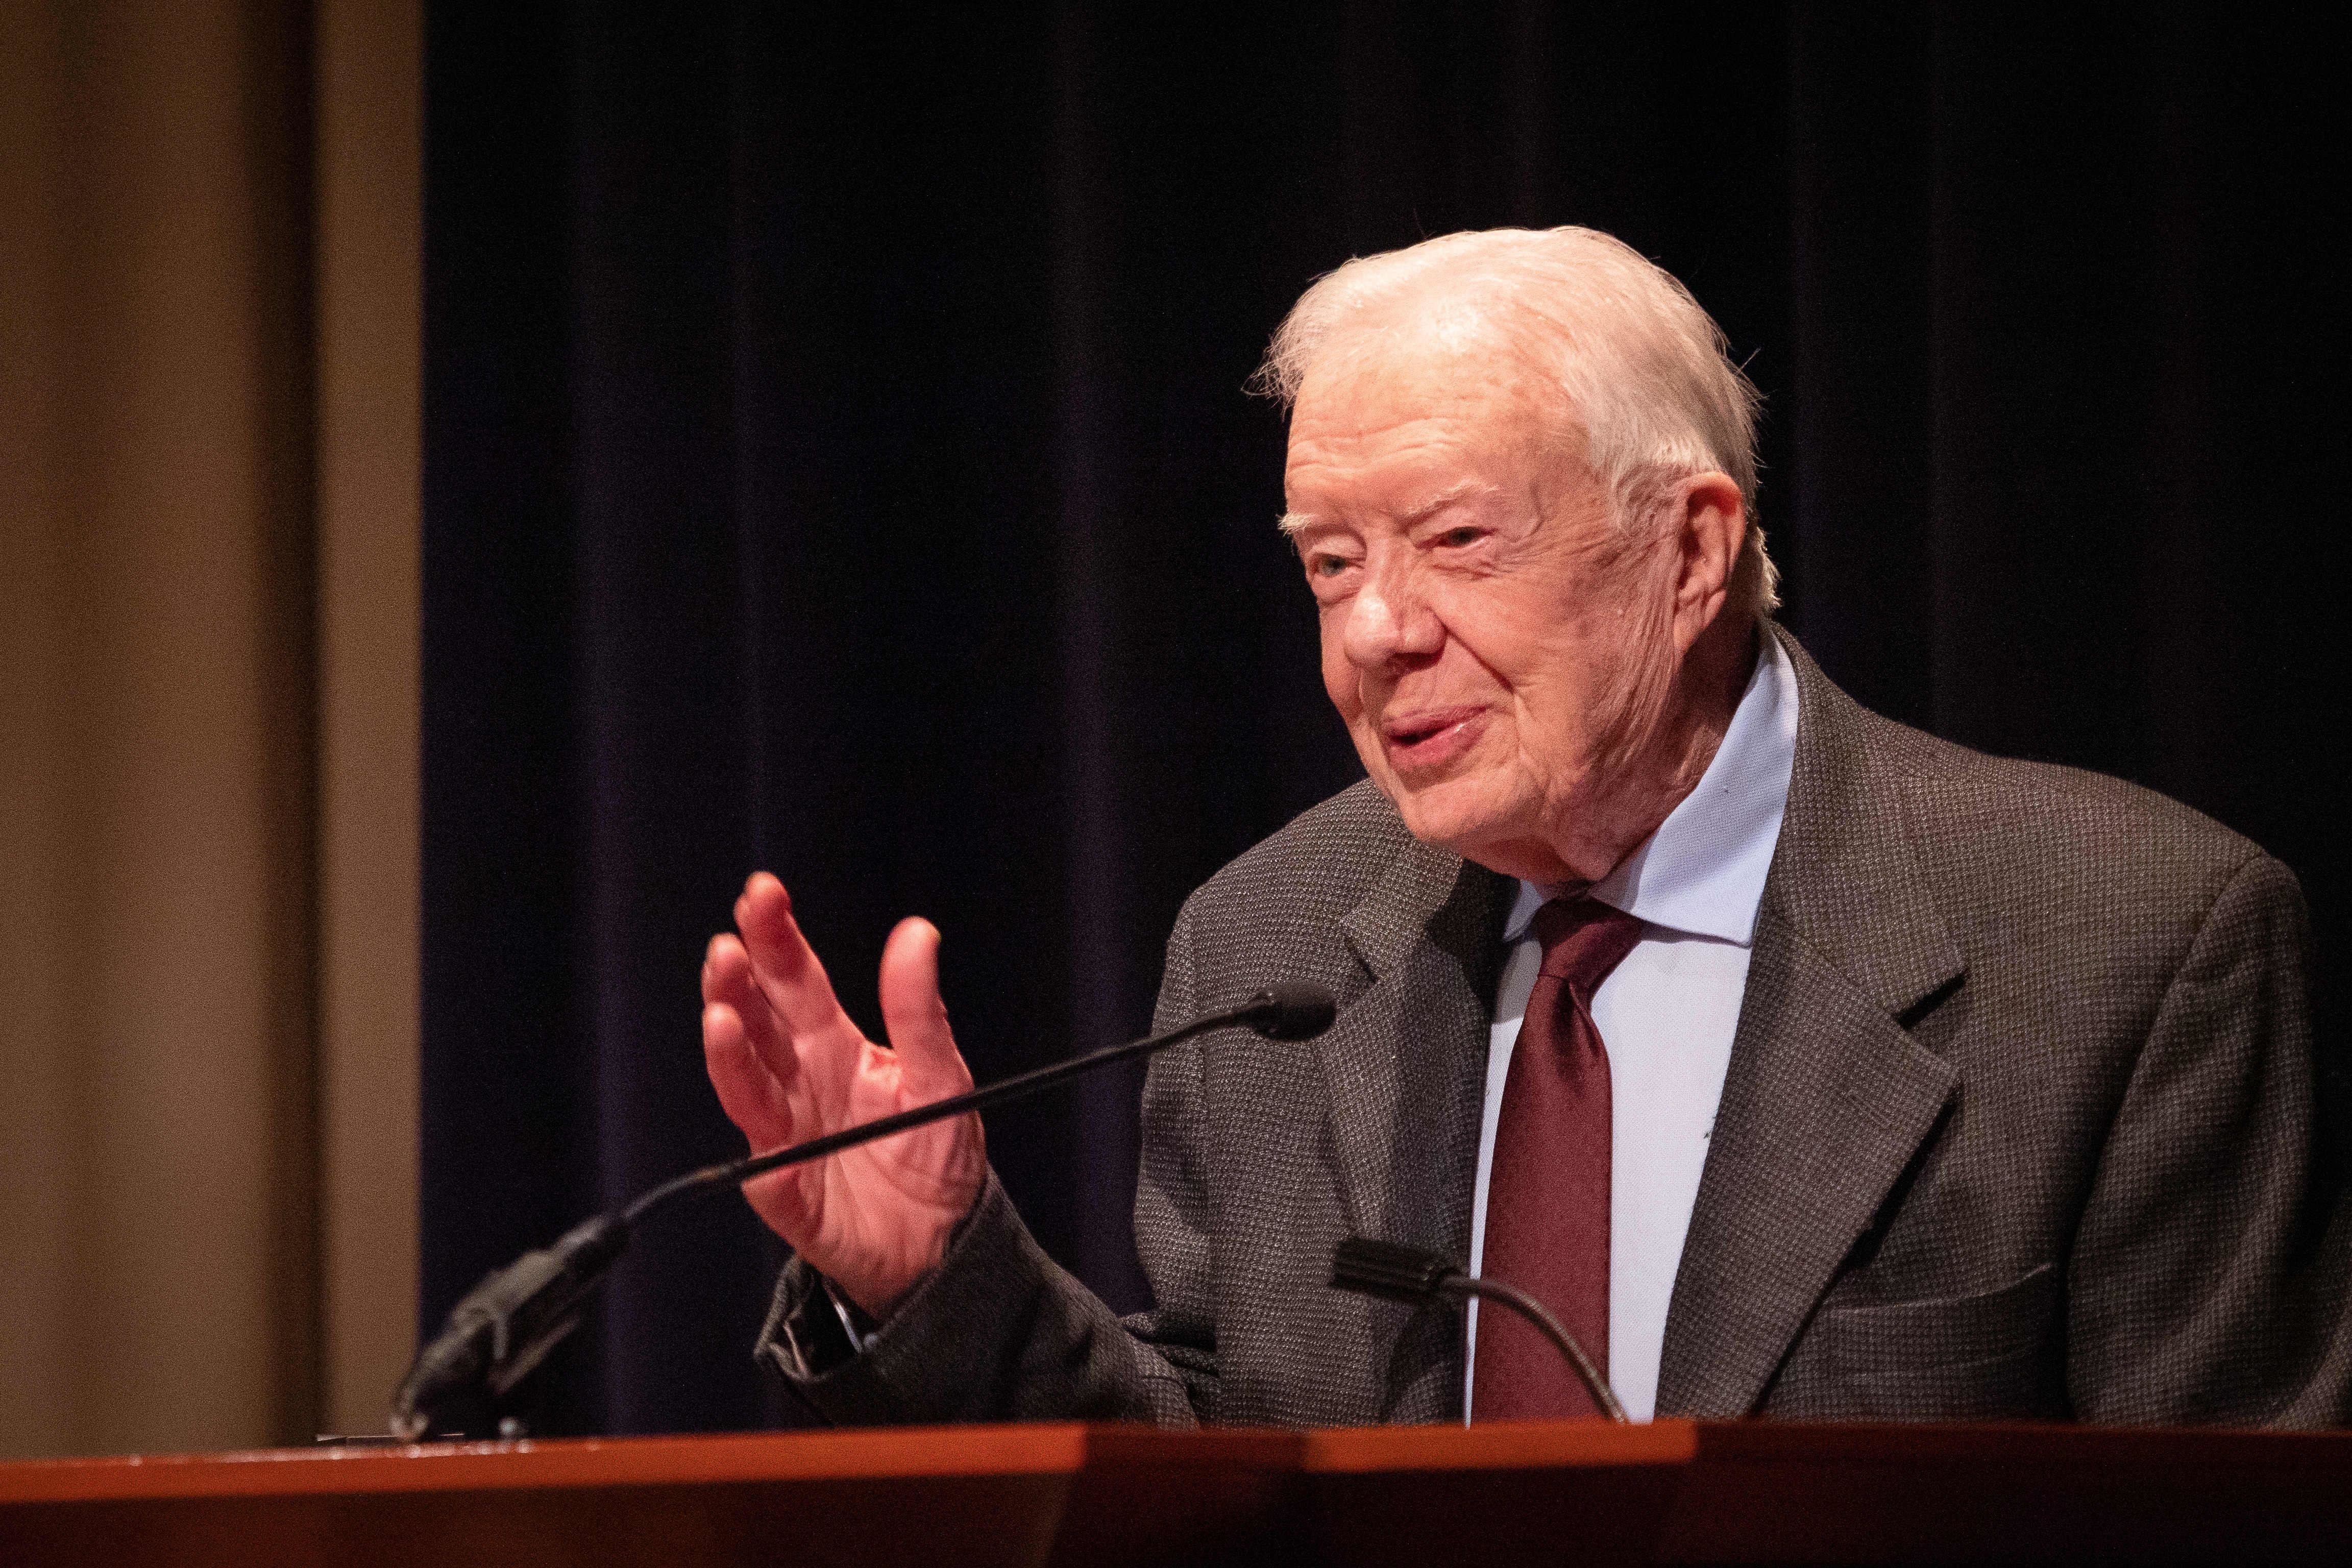 ATLANTA, UNITED STATES - JANUARY 18: Former U.S. President Jimmy Carter speaks during the symposium commemorating the 40th anniversary of the normalization of US-China relations at the Carter Center on January 18, 2019 in Atlanta, the United States. The symposium, jointly organized by the Carter Center, the Chinese People's Association for Friendship with Foreign Countries and the Institute of American Studies (IAS) under the Chinese Academy of Social Sciences, took place in Atlanta on Friday. (Image provided by the organizer/China News Service/VCG via Getty Images)